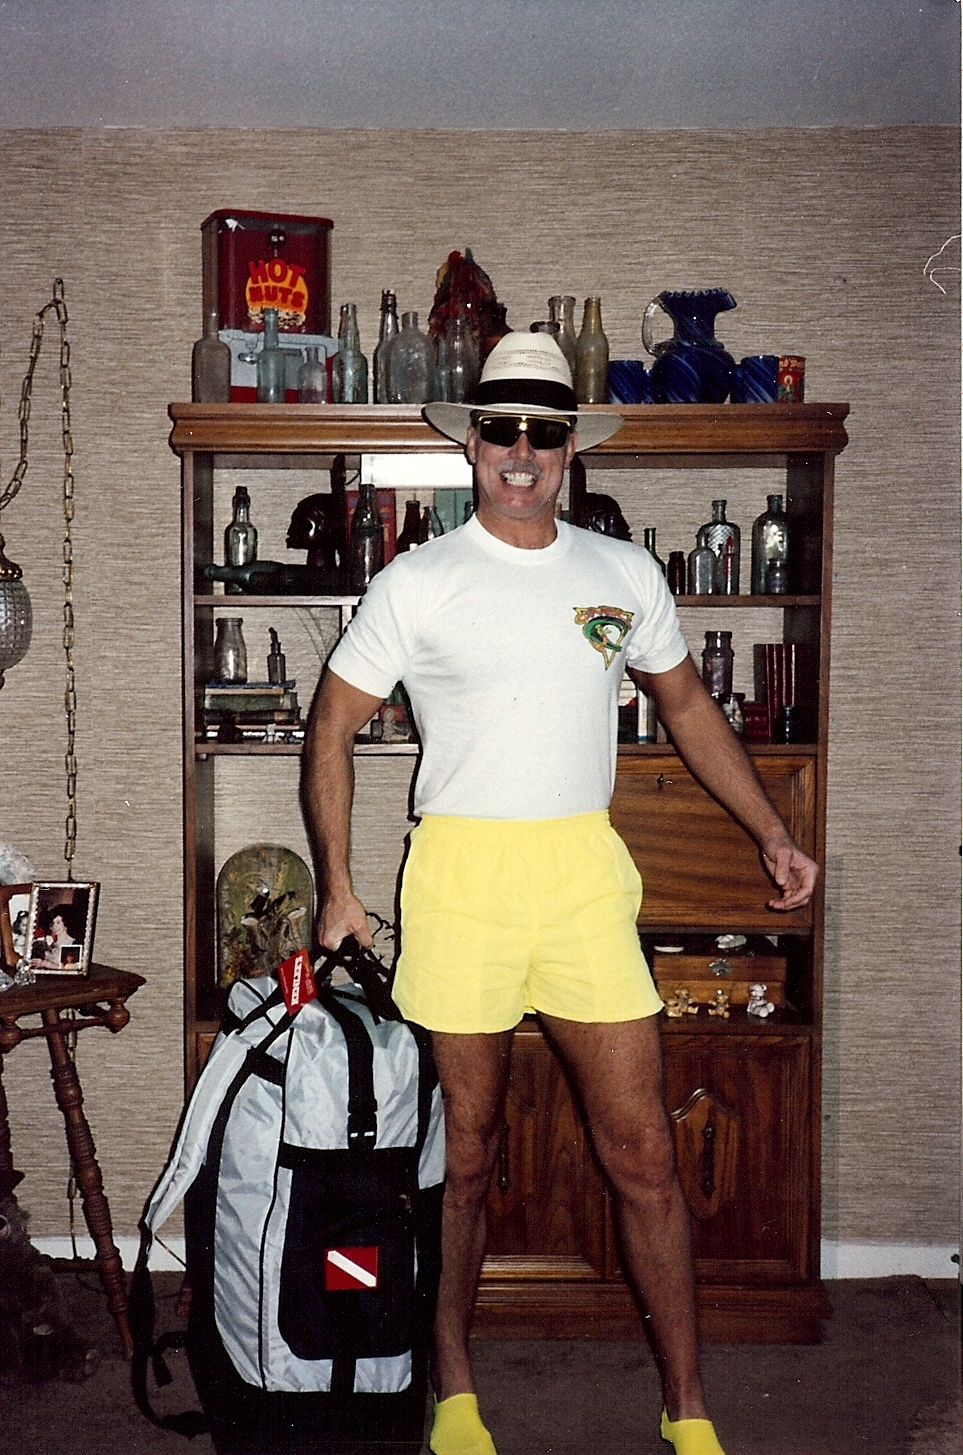 Bob McNeil - 1991 - Age 42 - Ready for Scuba Diving